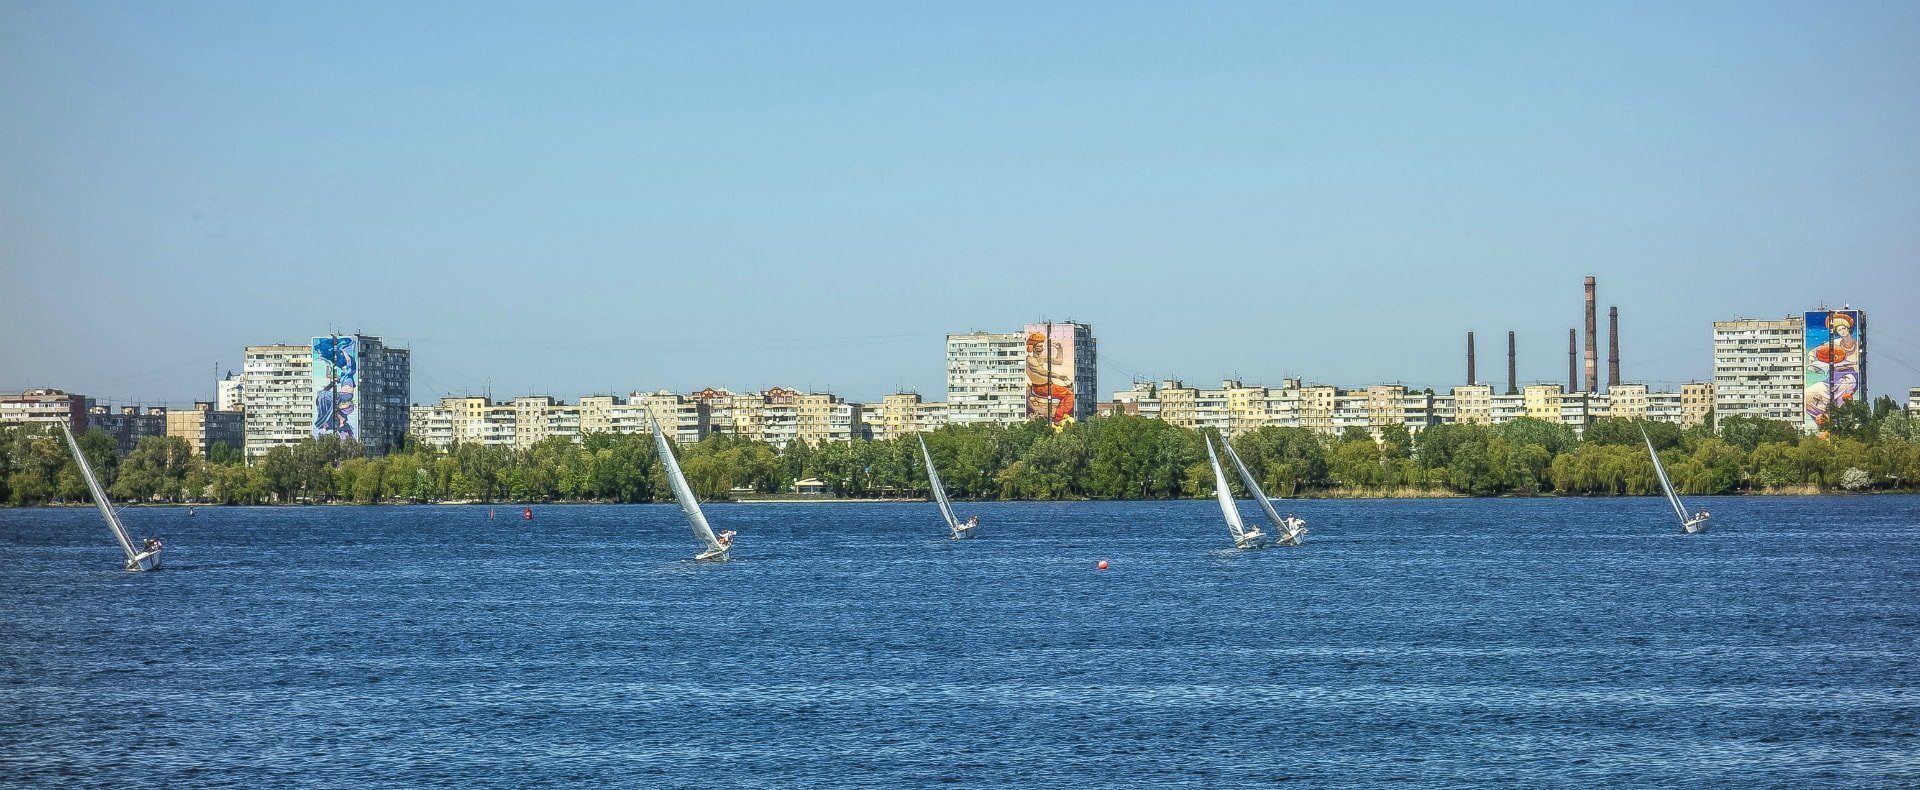 Dnieper River, Ukraine Gallery